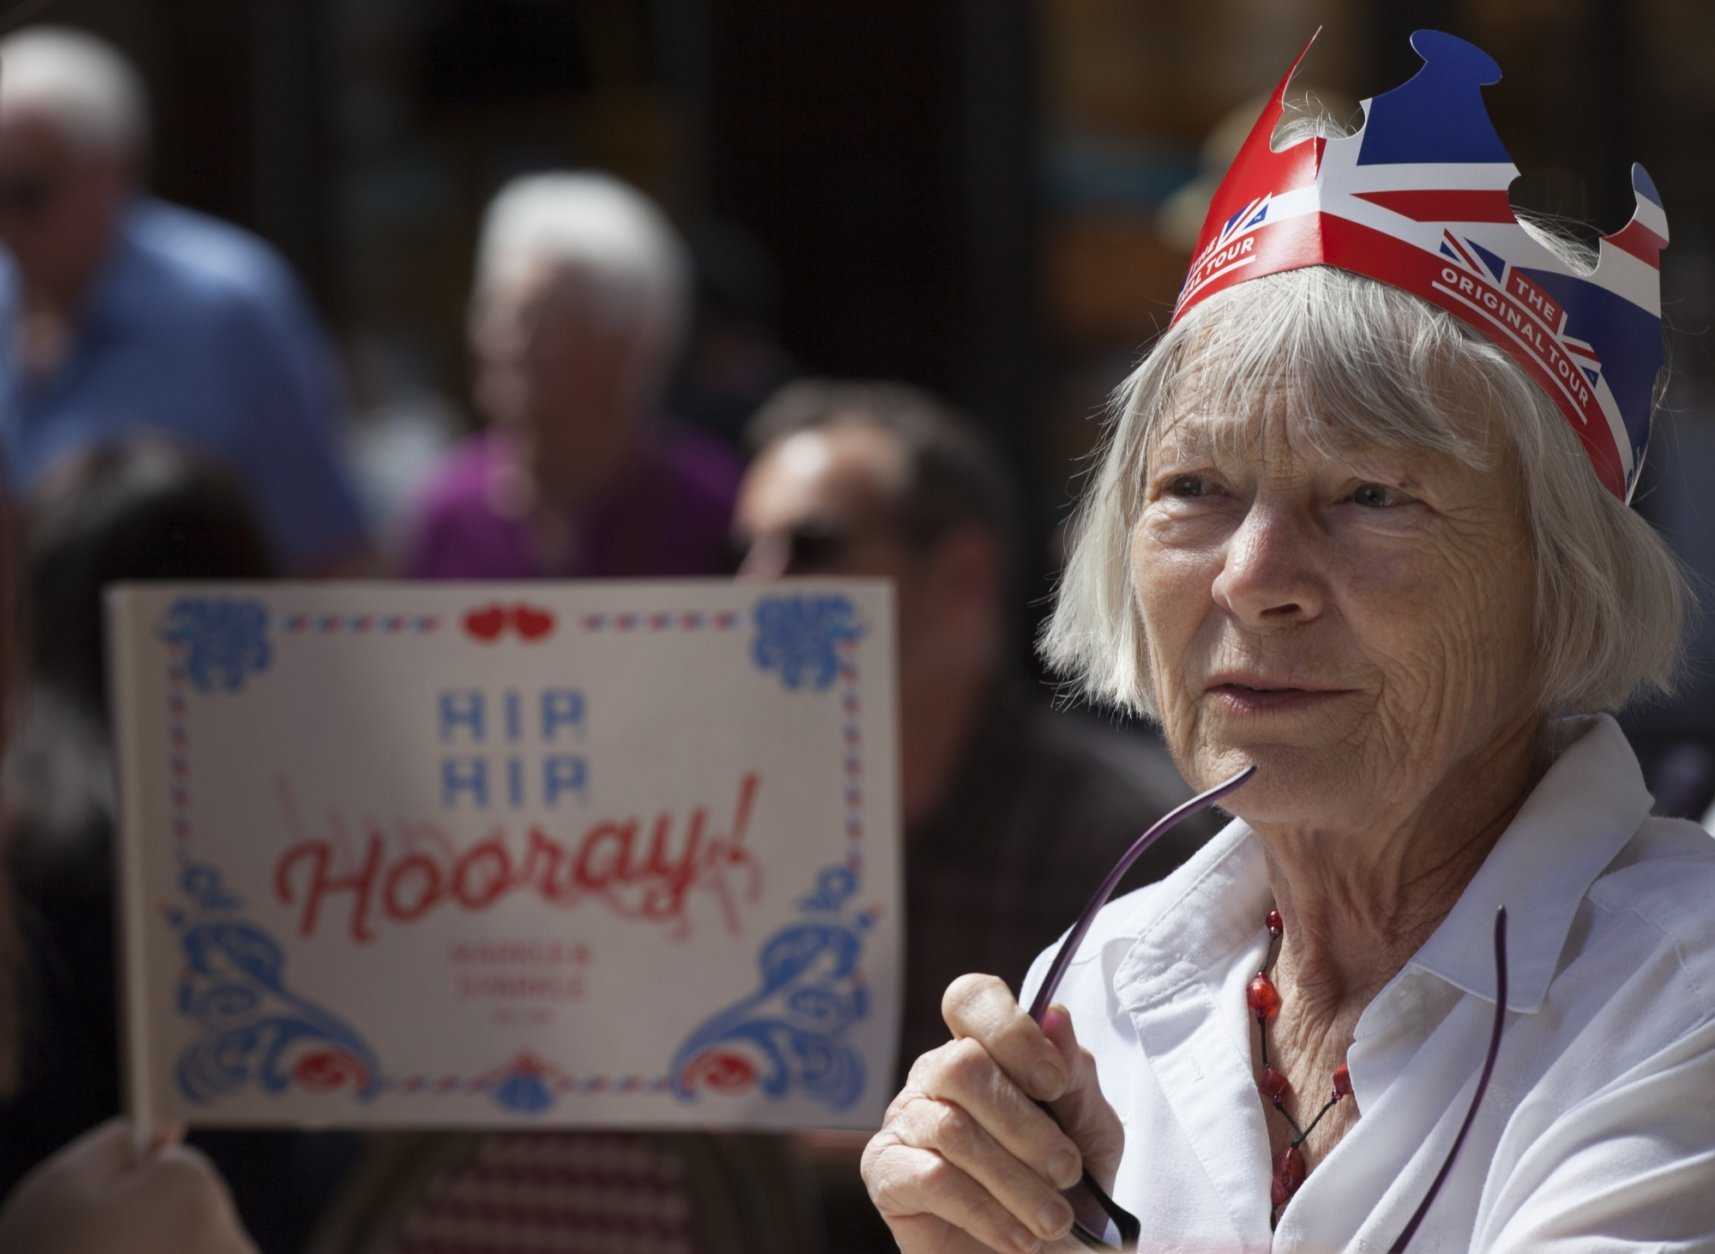 "A woman looks up to a person holding a small flag reading ""Hip Hip Hooray"" as they sit on a terrace near Windsor castle, England, Friday, May 18, 2018. Preparations continue in Windsor ahead of the royal wedding of Britain's Prince Harry and Meghan Markle Saturday May 19. (AP Photo/Peter Dejong)"